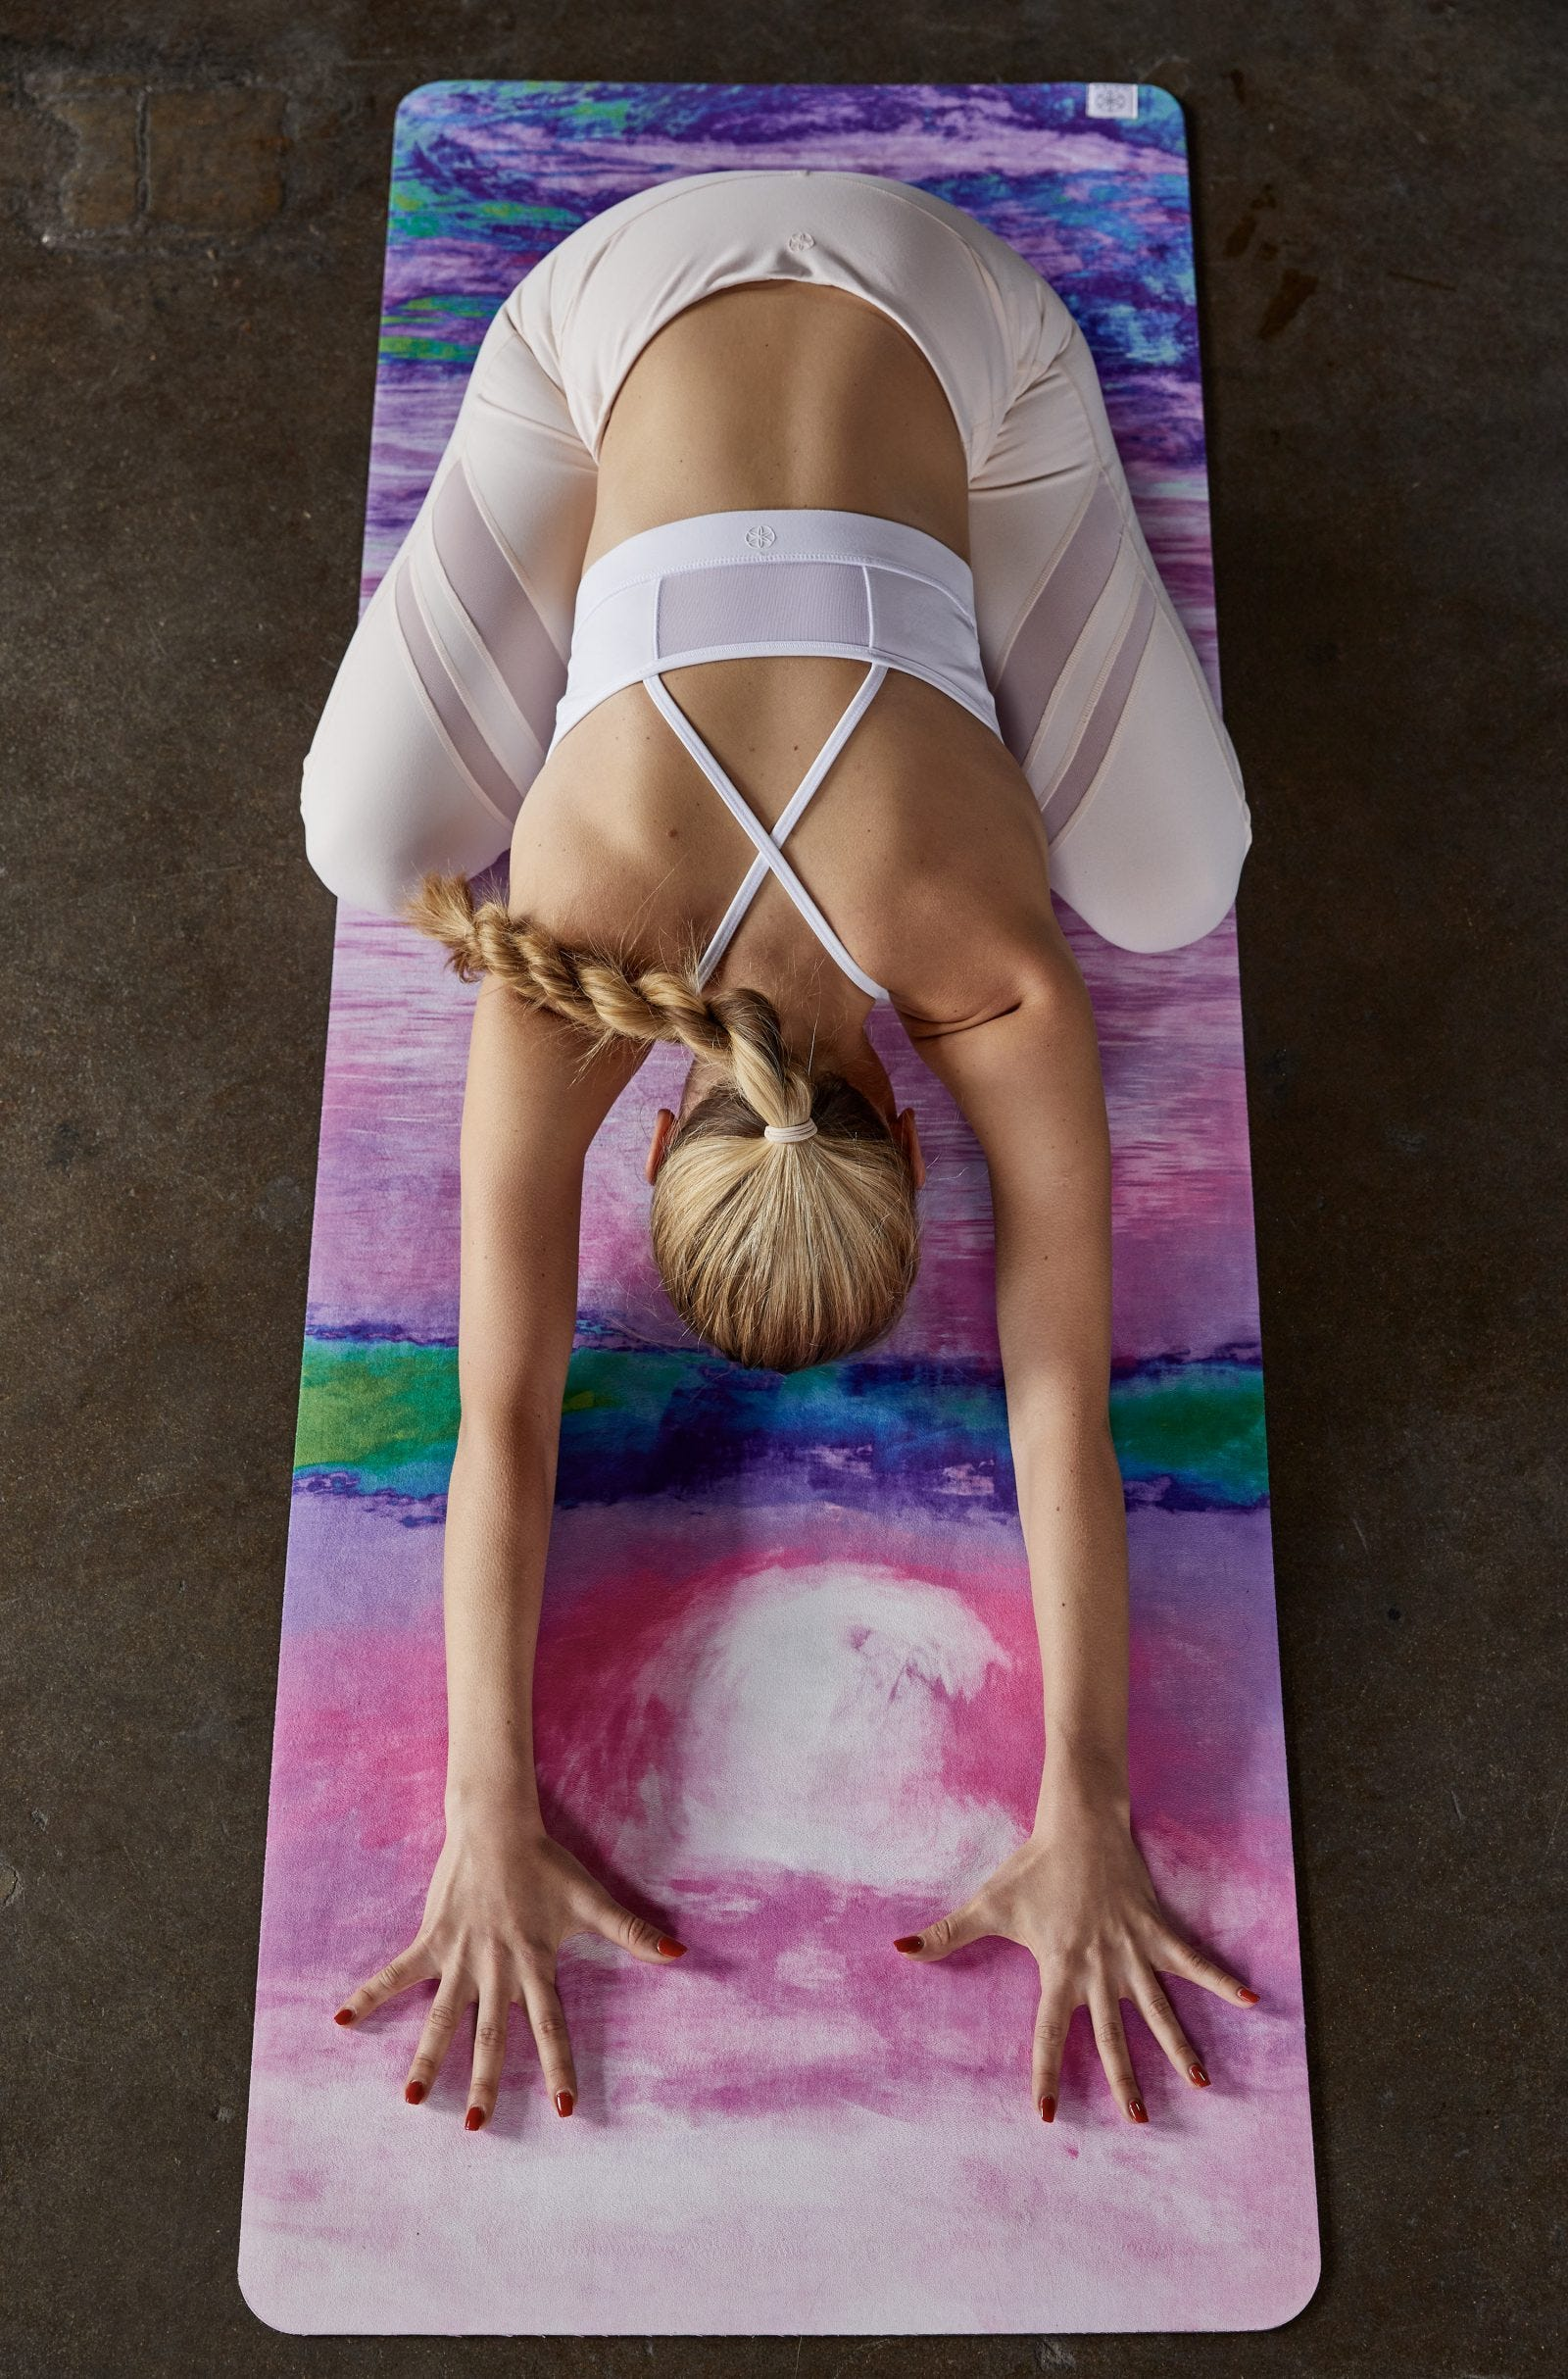 A woman in the Child's Pose Yoga position.